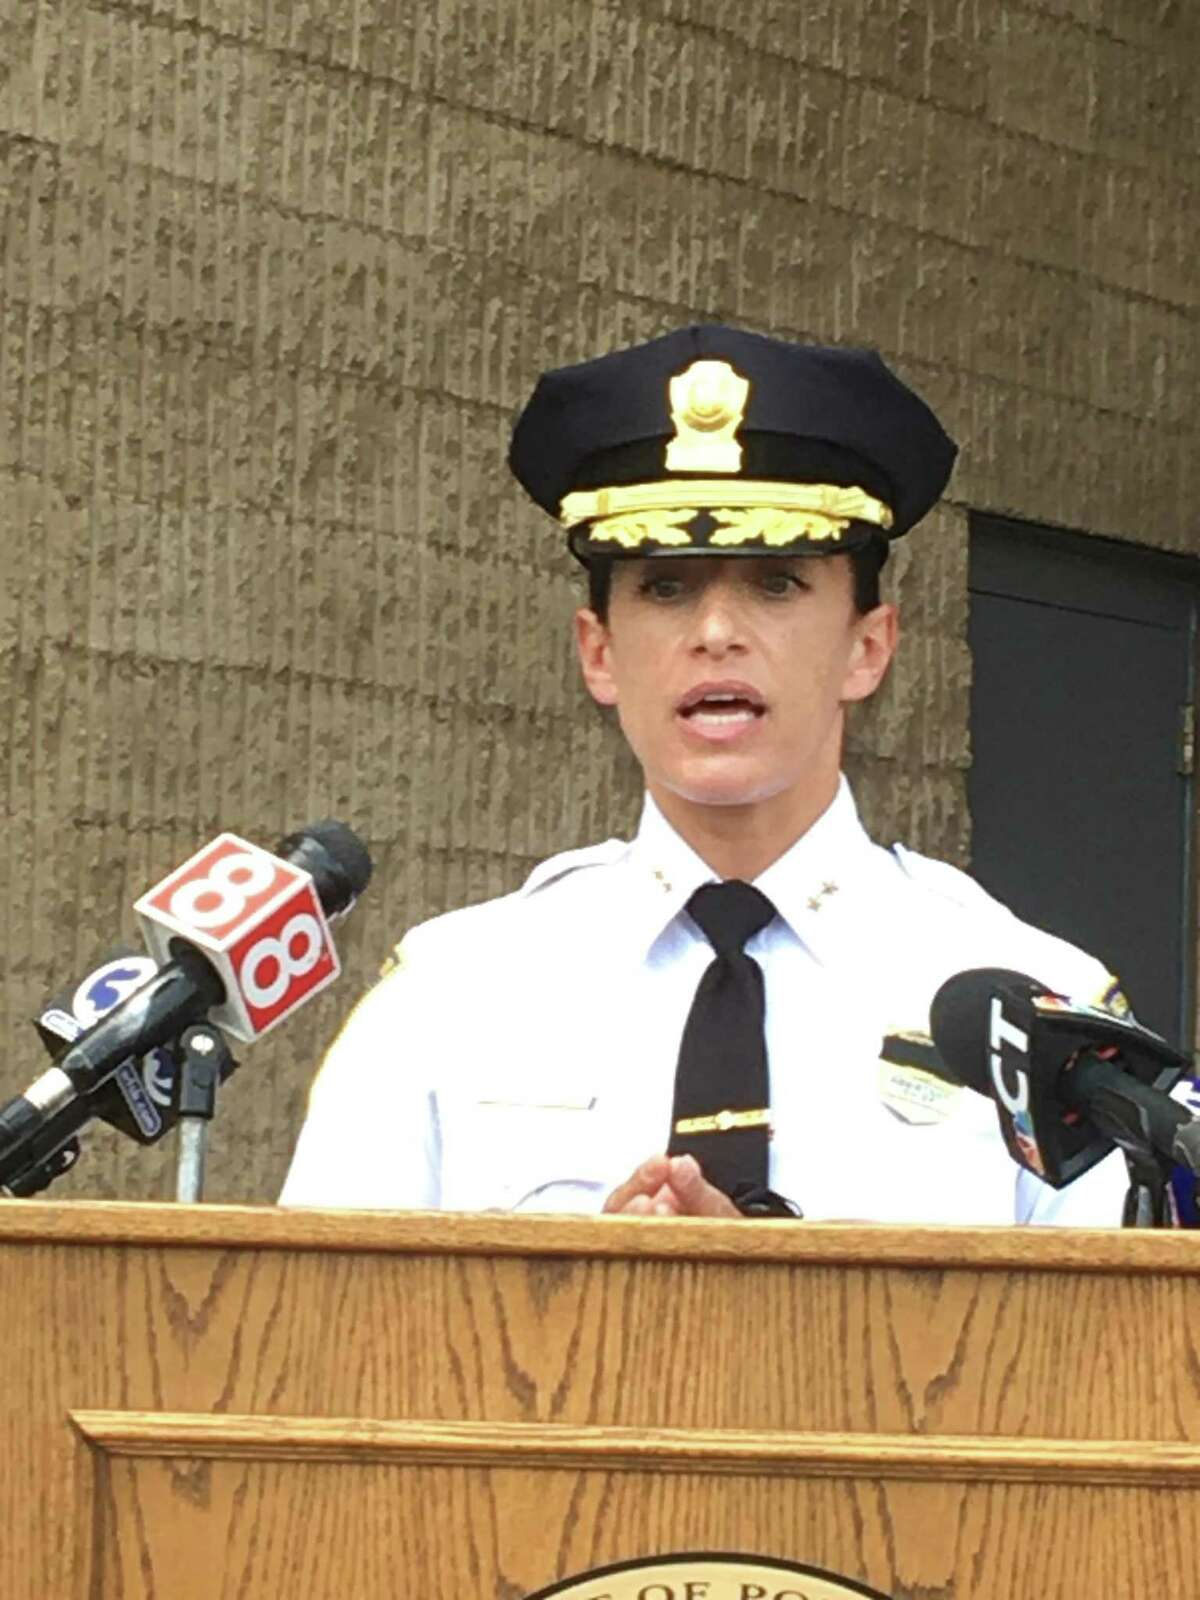 New Haven acting Chief of Police Renee Dominguez speaks about the early-morning shooting death of Jack Hopeton, 44, of Waterbury on Tuesday, May 18, 2021. The shooting death was New Haven's 11th homicide of 2021. Dominguez spoke at a press conference on the front steps of Police Headquarters, 1 Union Ave., joined by Mayor Justin Elicker and Assistant Chief Karl Jacobson.